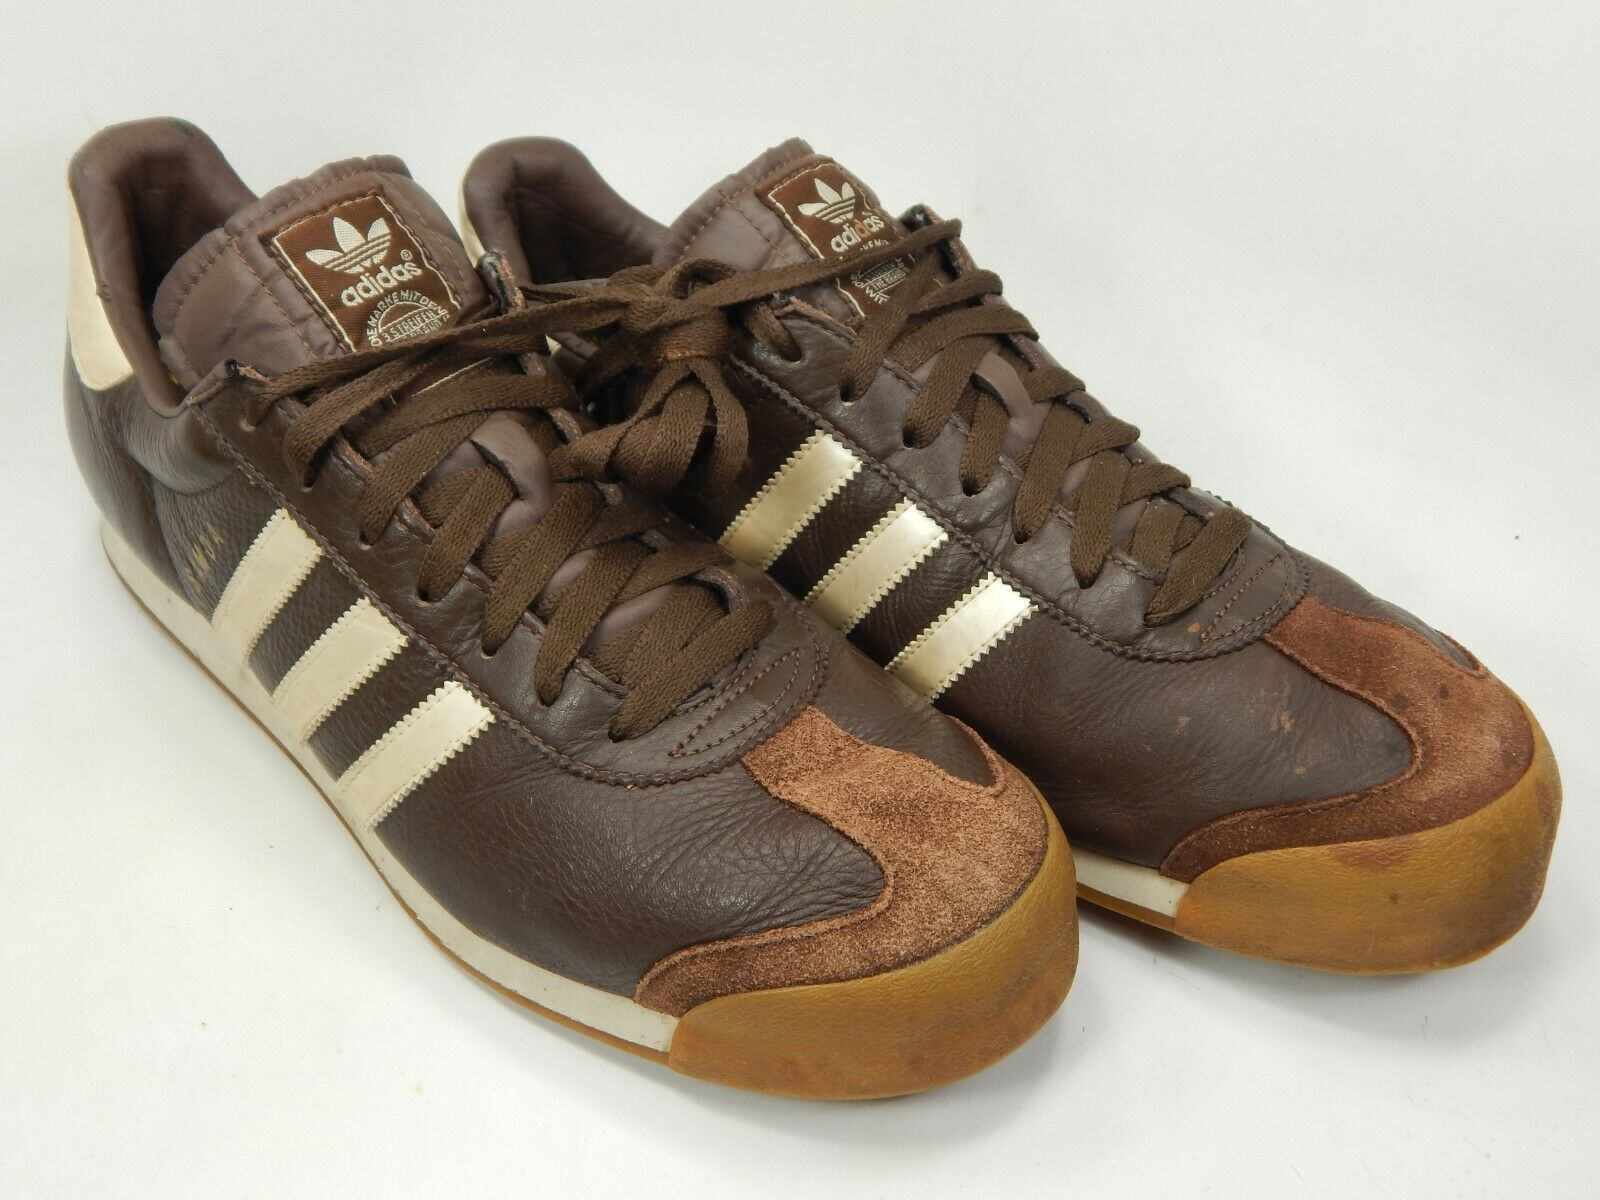 Adidas Samoa Size US 12 M (D) EU 46 2/3 Men's Casual Sneakers Shoes Brown 678867